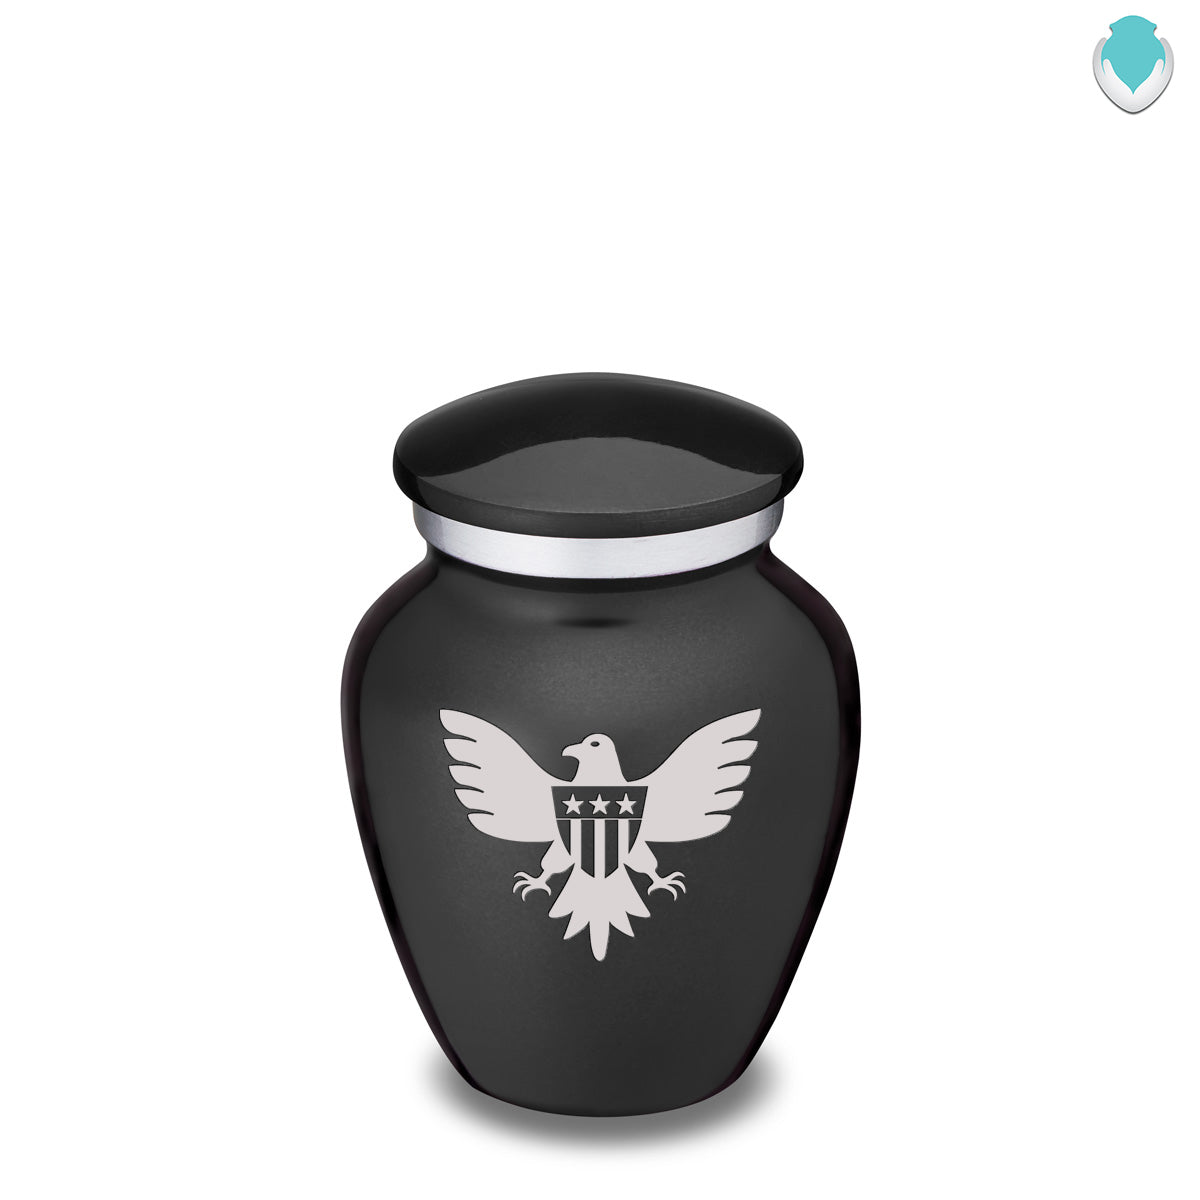 Keepsake Embrace Charcoal American Glory Cremation Urn